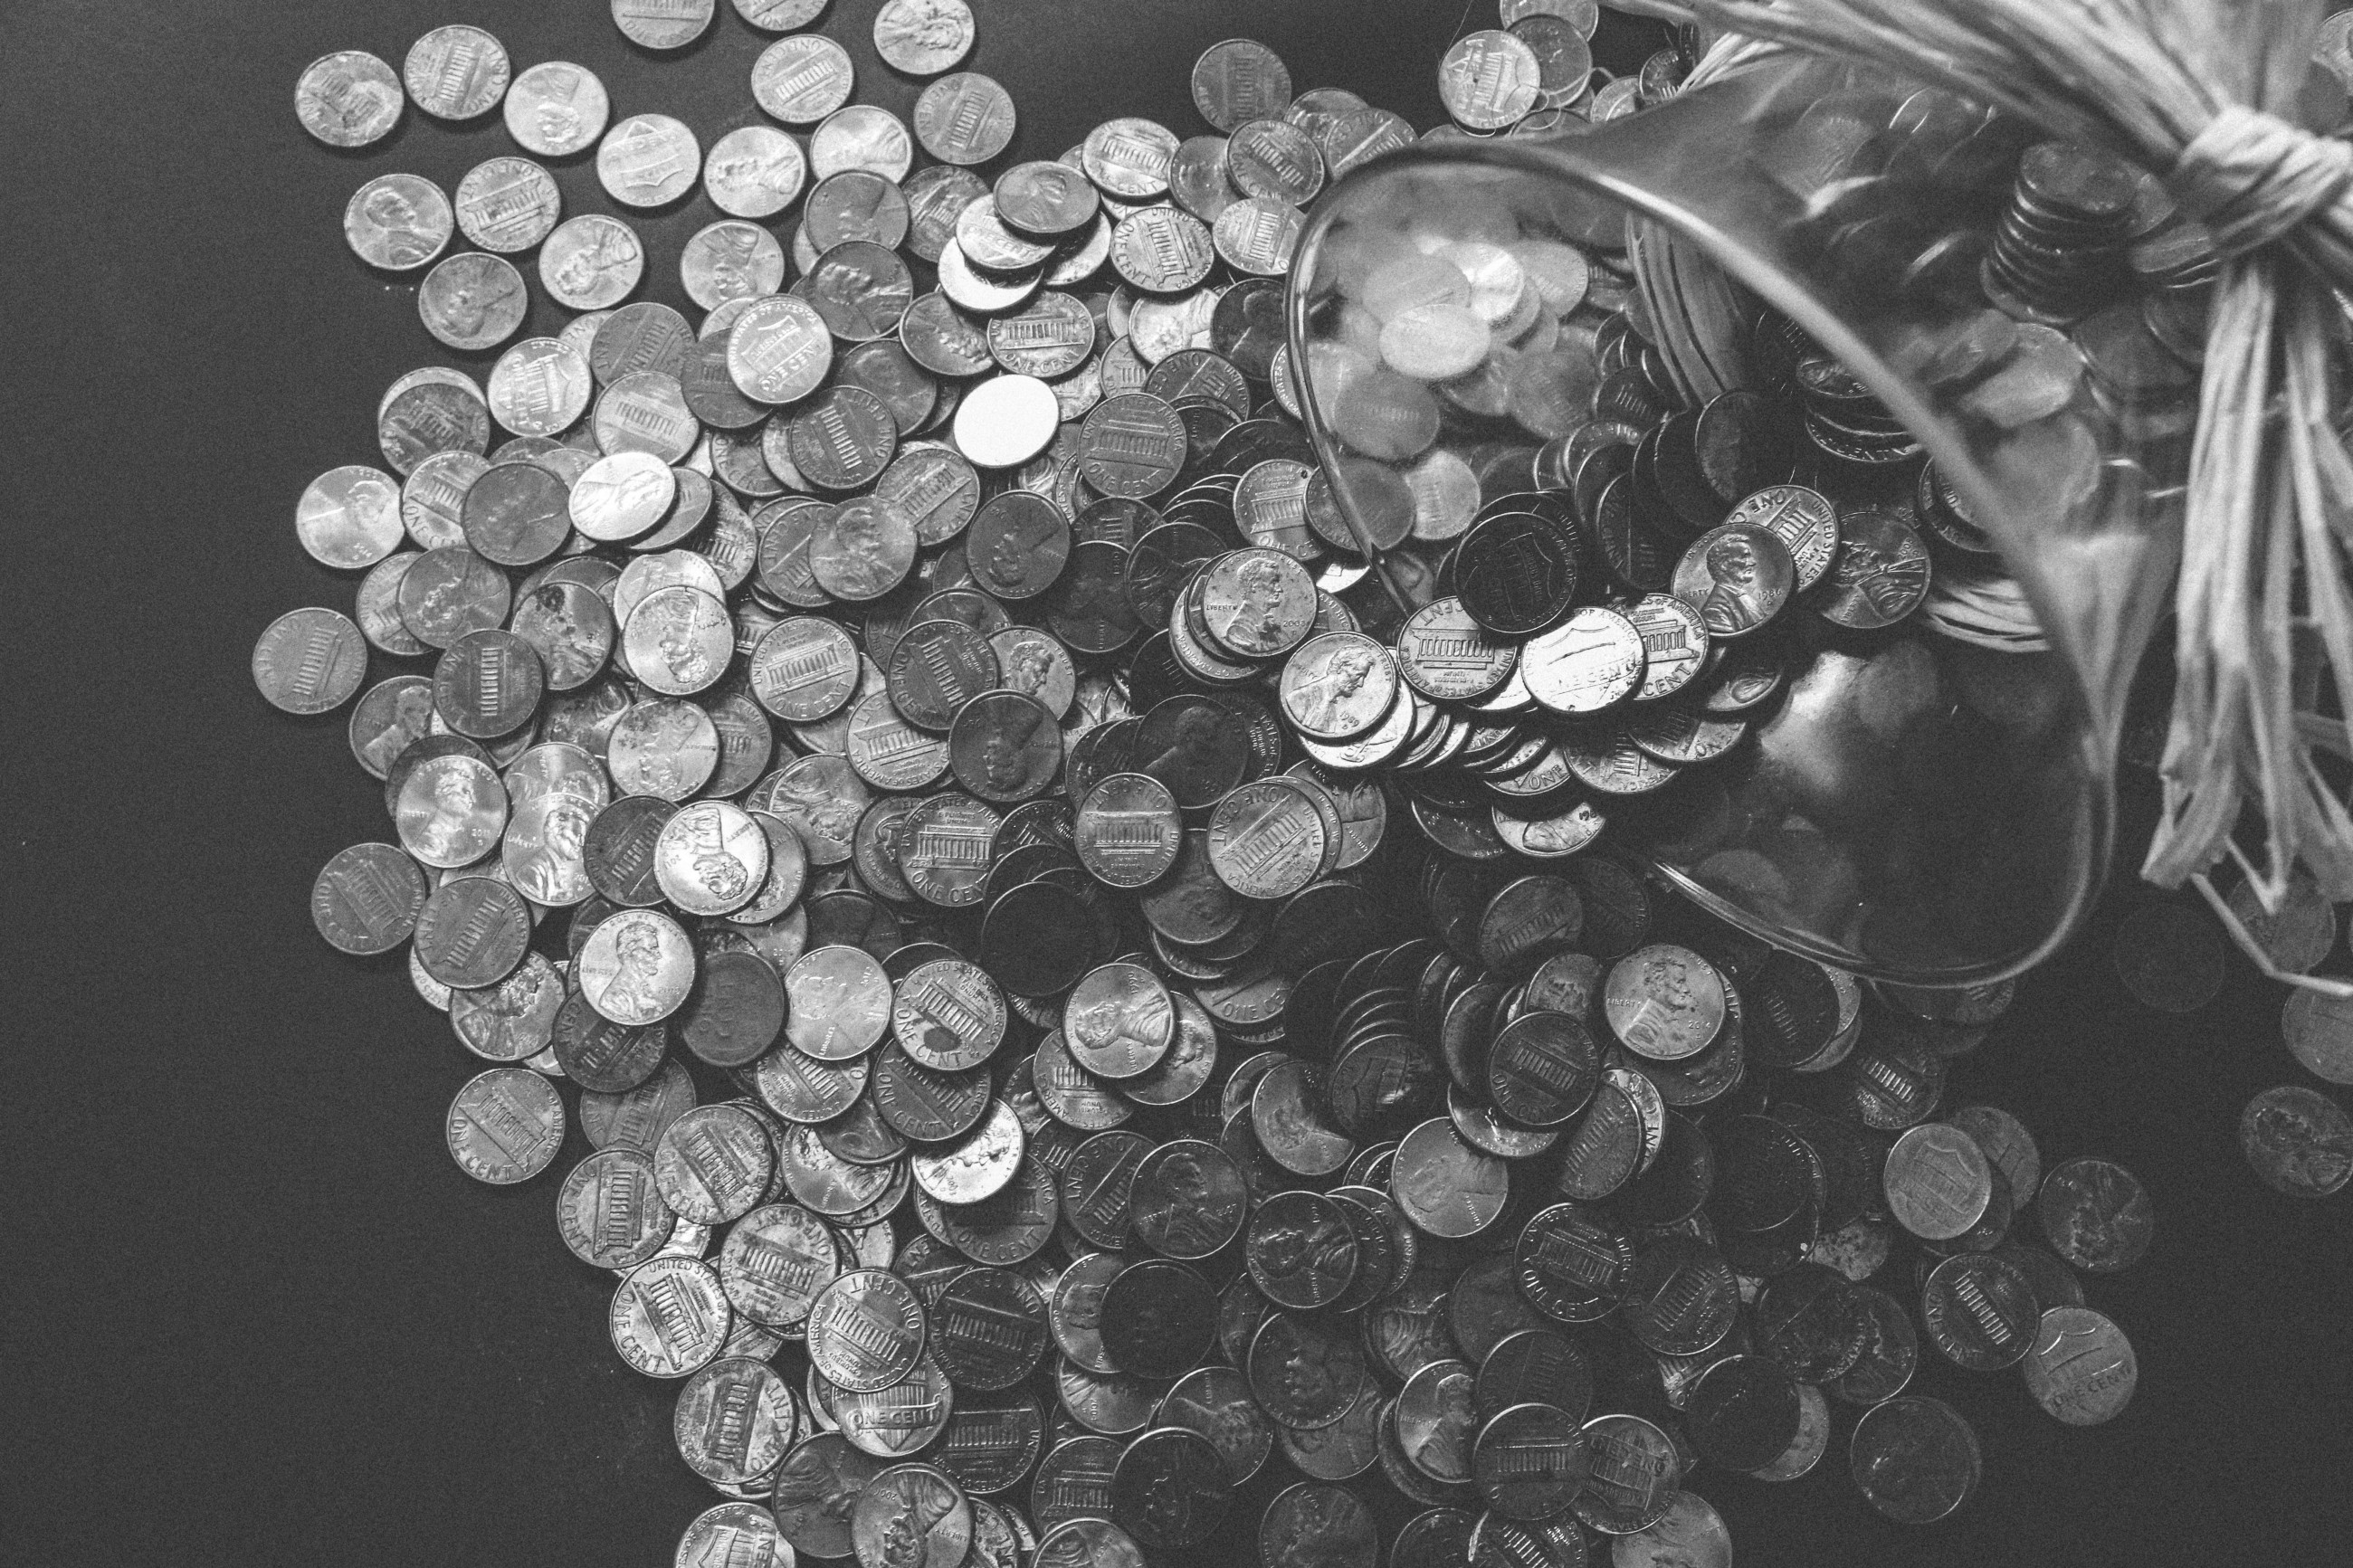 hackernoon.com - Shayan Shokrgozar - The Web Needs a Digital Currency: The Time for Seamless Micropayments Is Upon Us